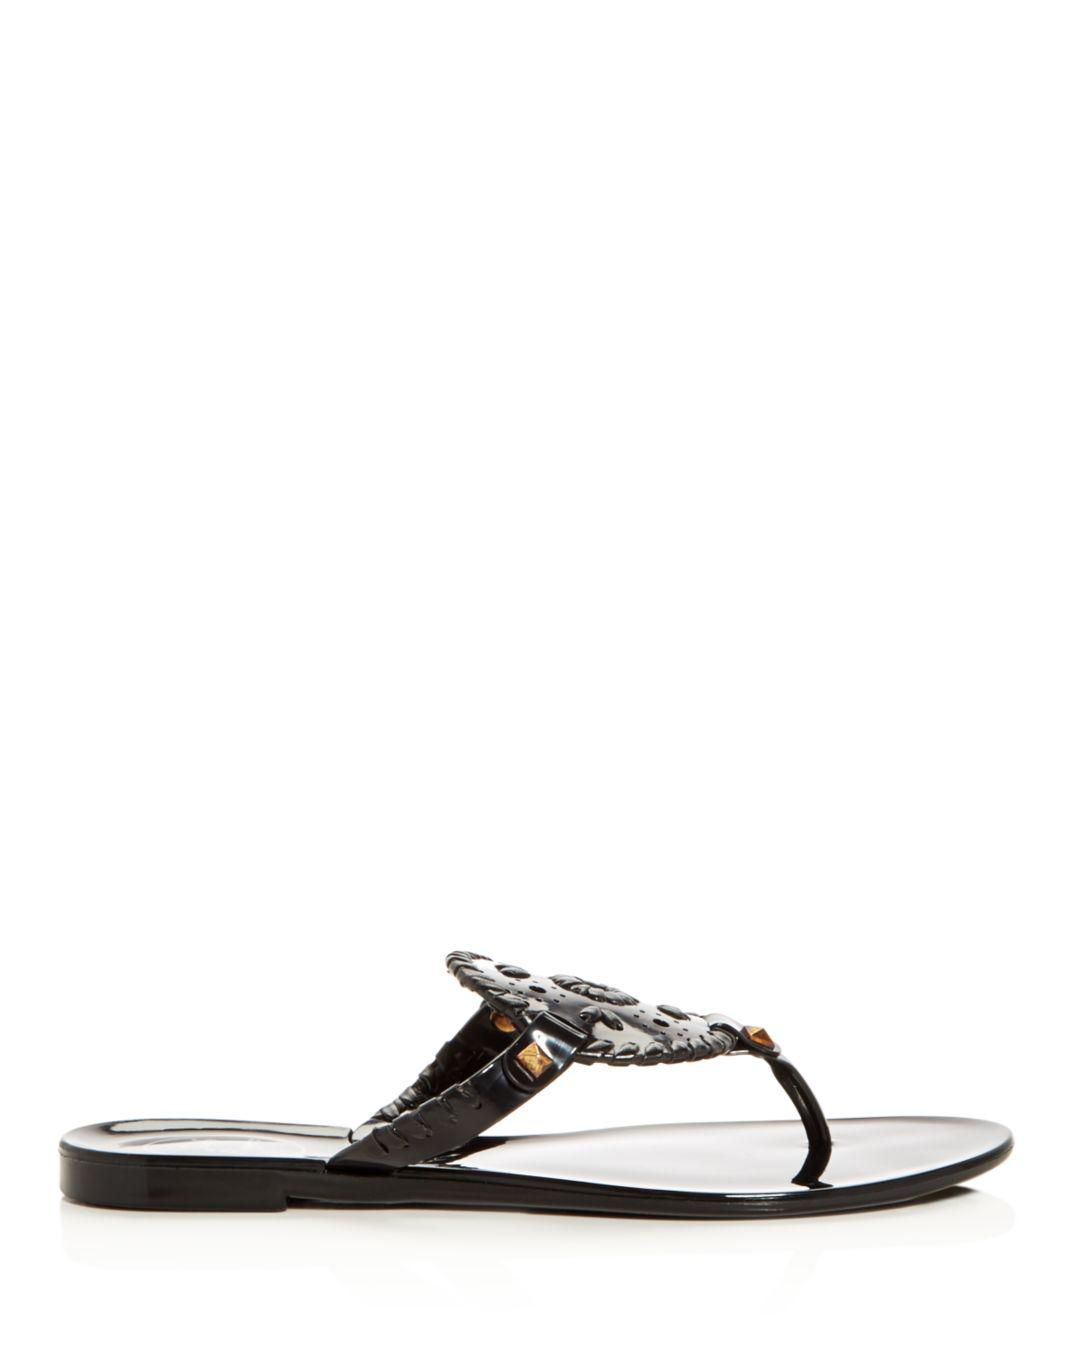 9df680a4d Lyst - Jack Rogers Georgica Jelly Thong Sandals in Black - Save 28%